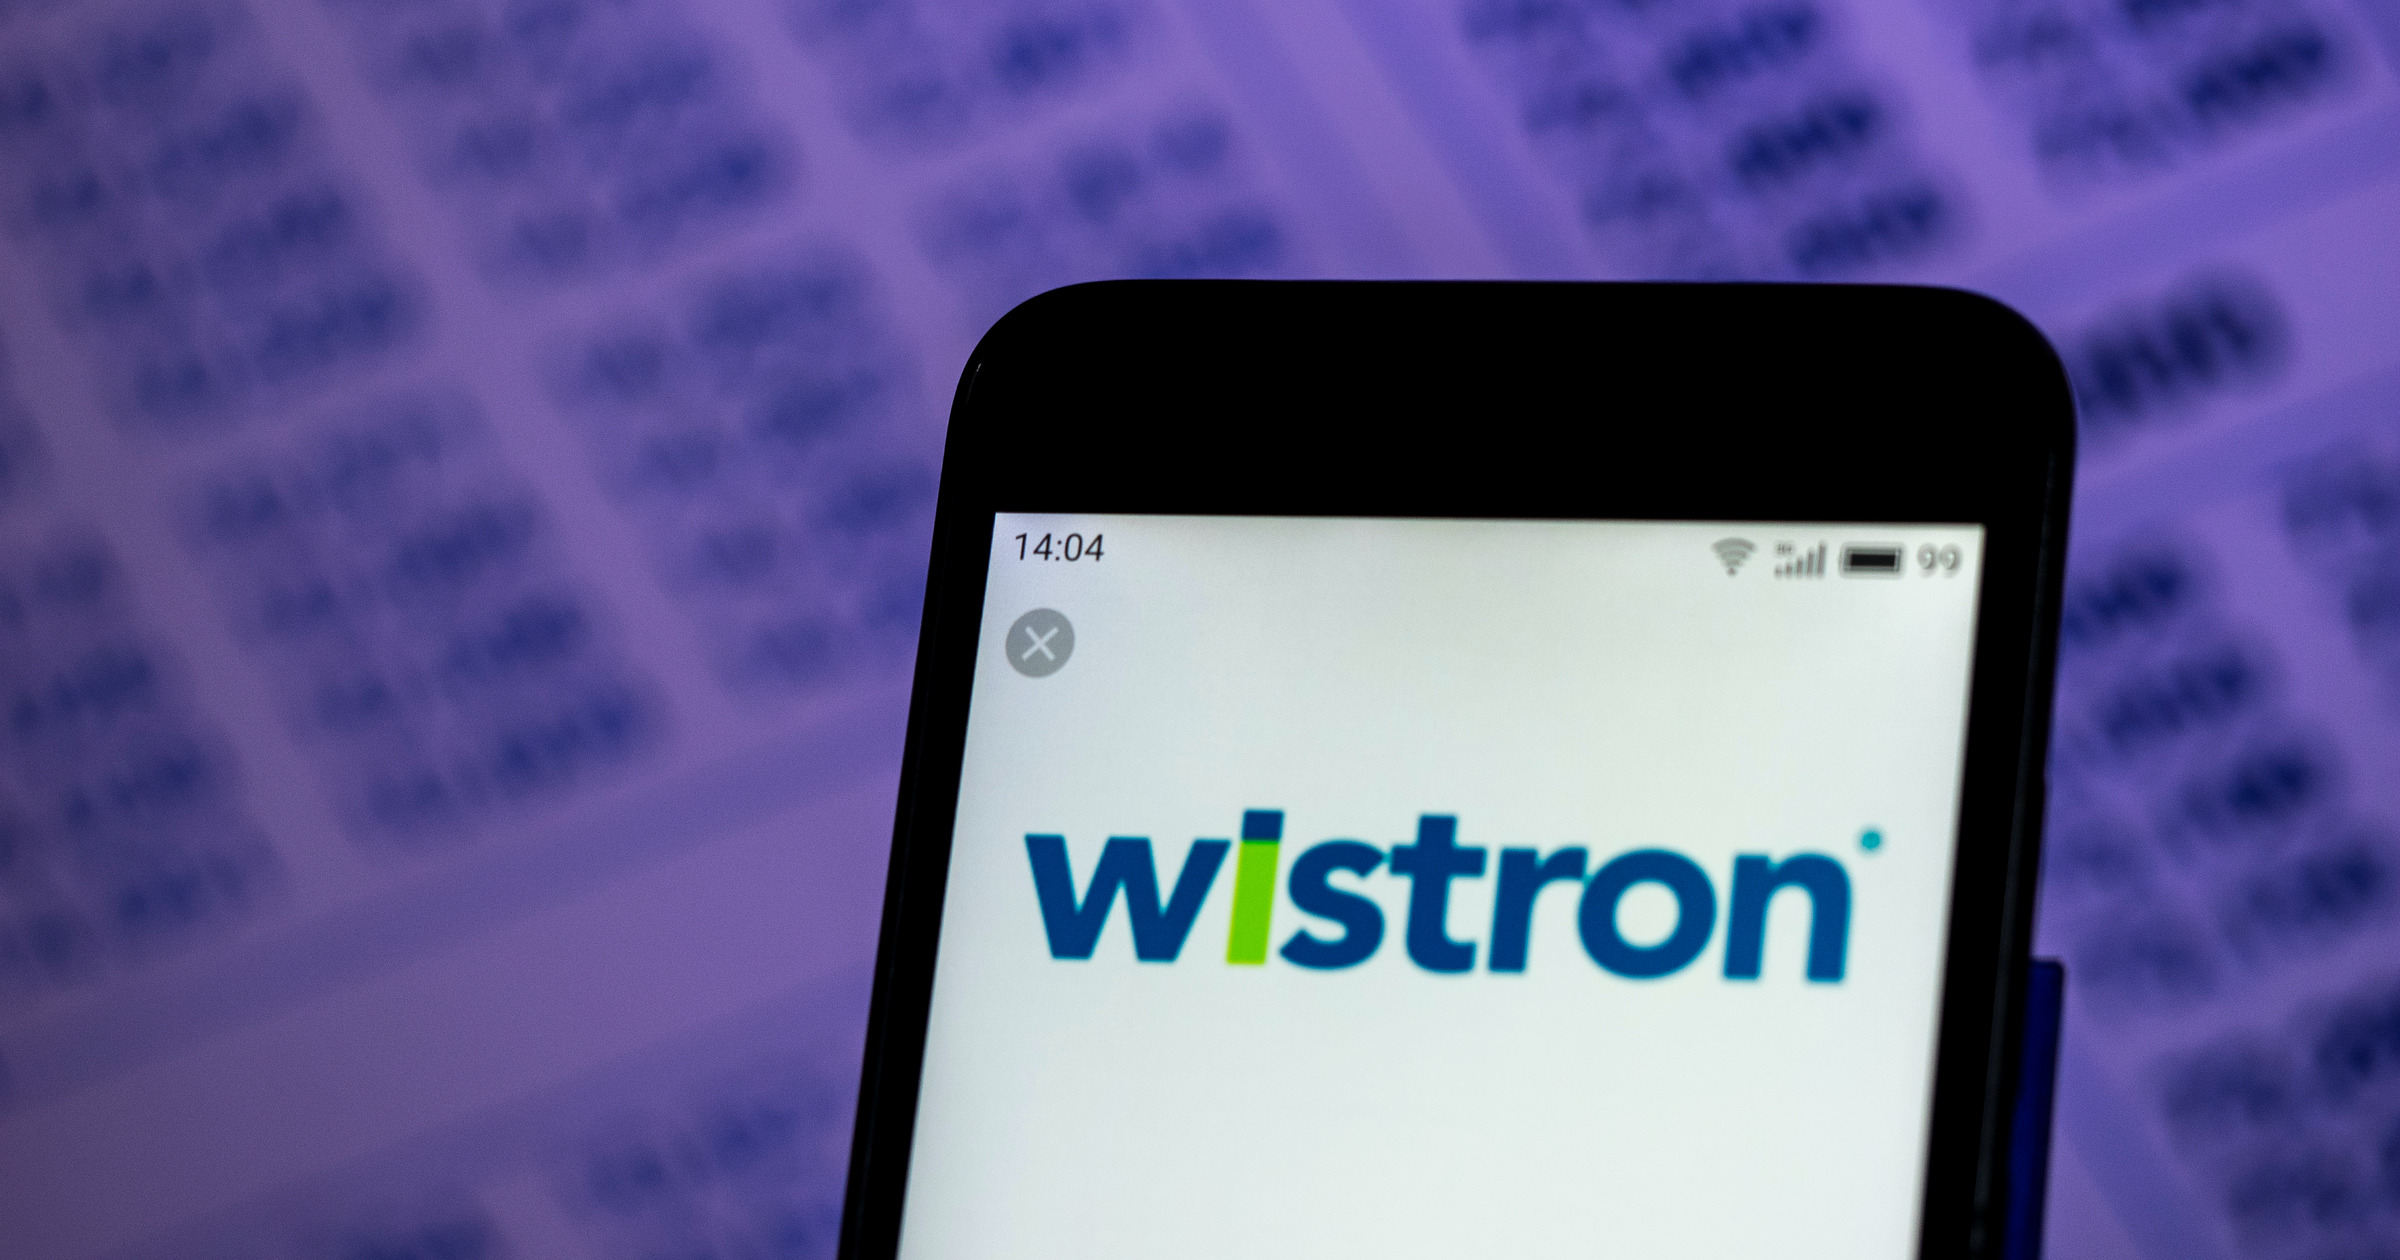 Wistron logo on an iPhone